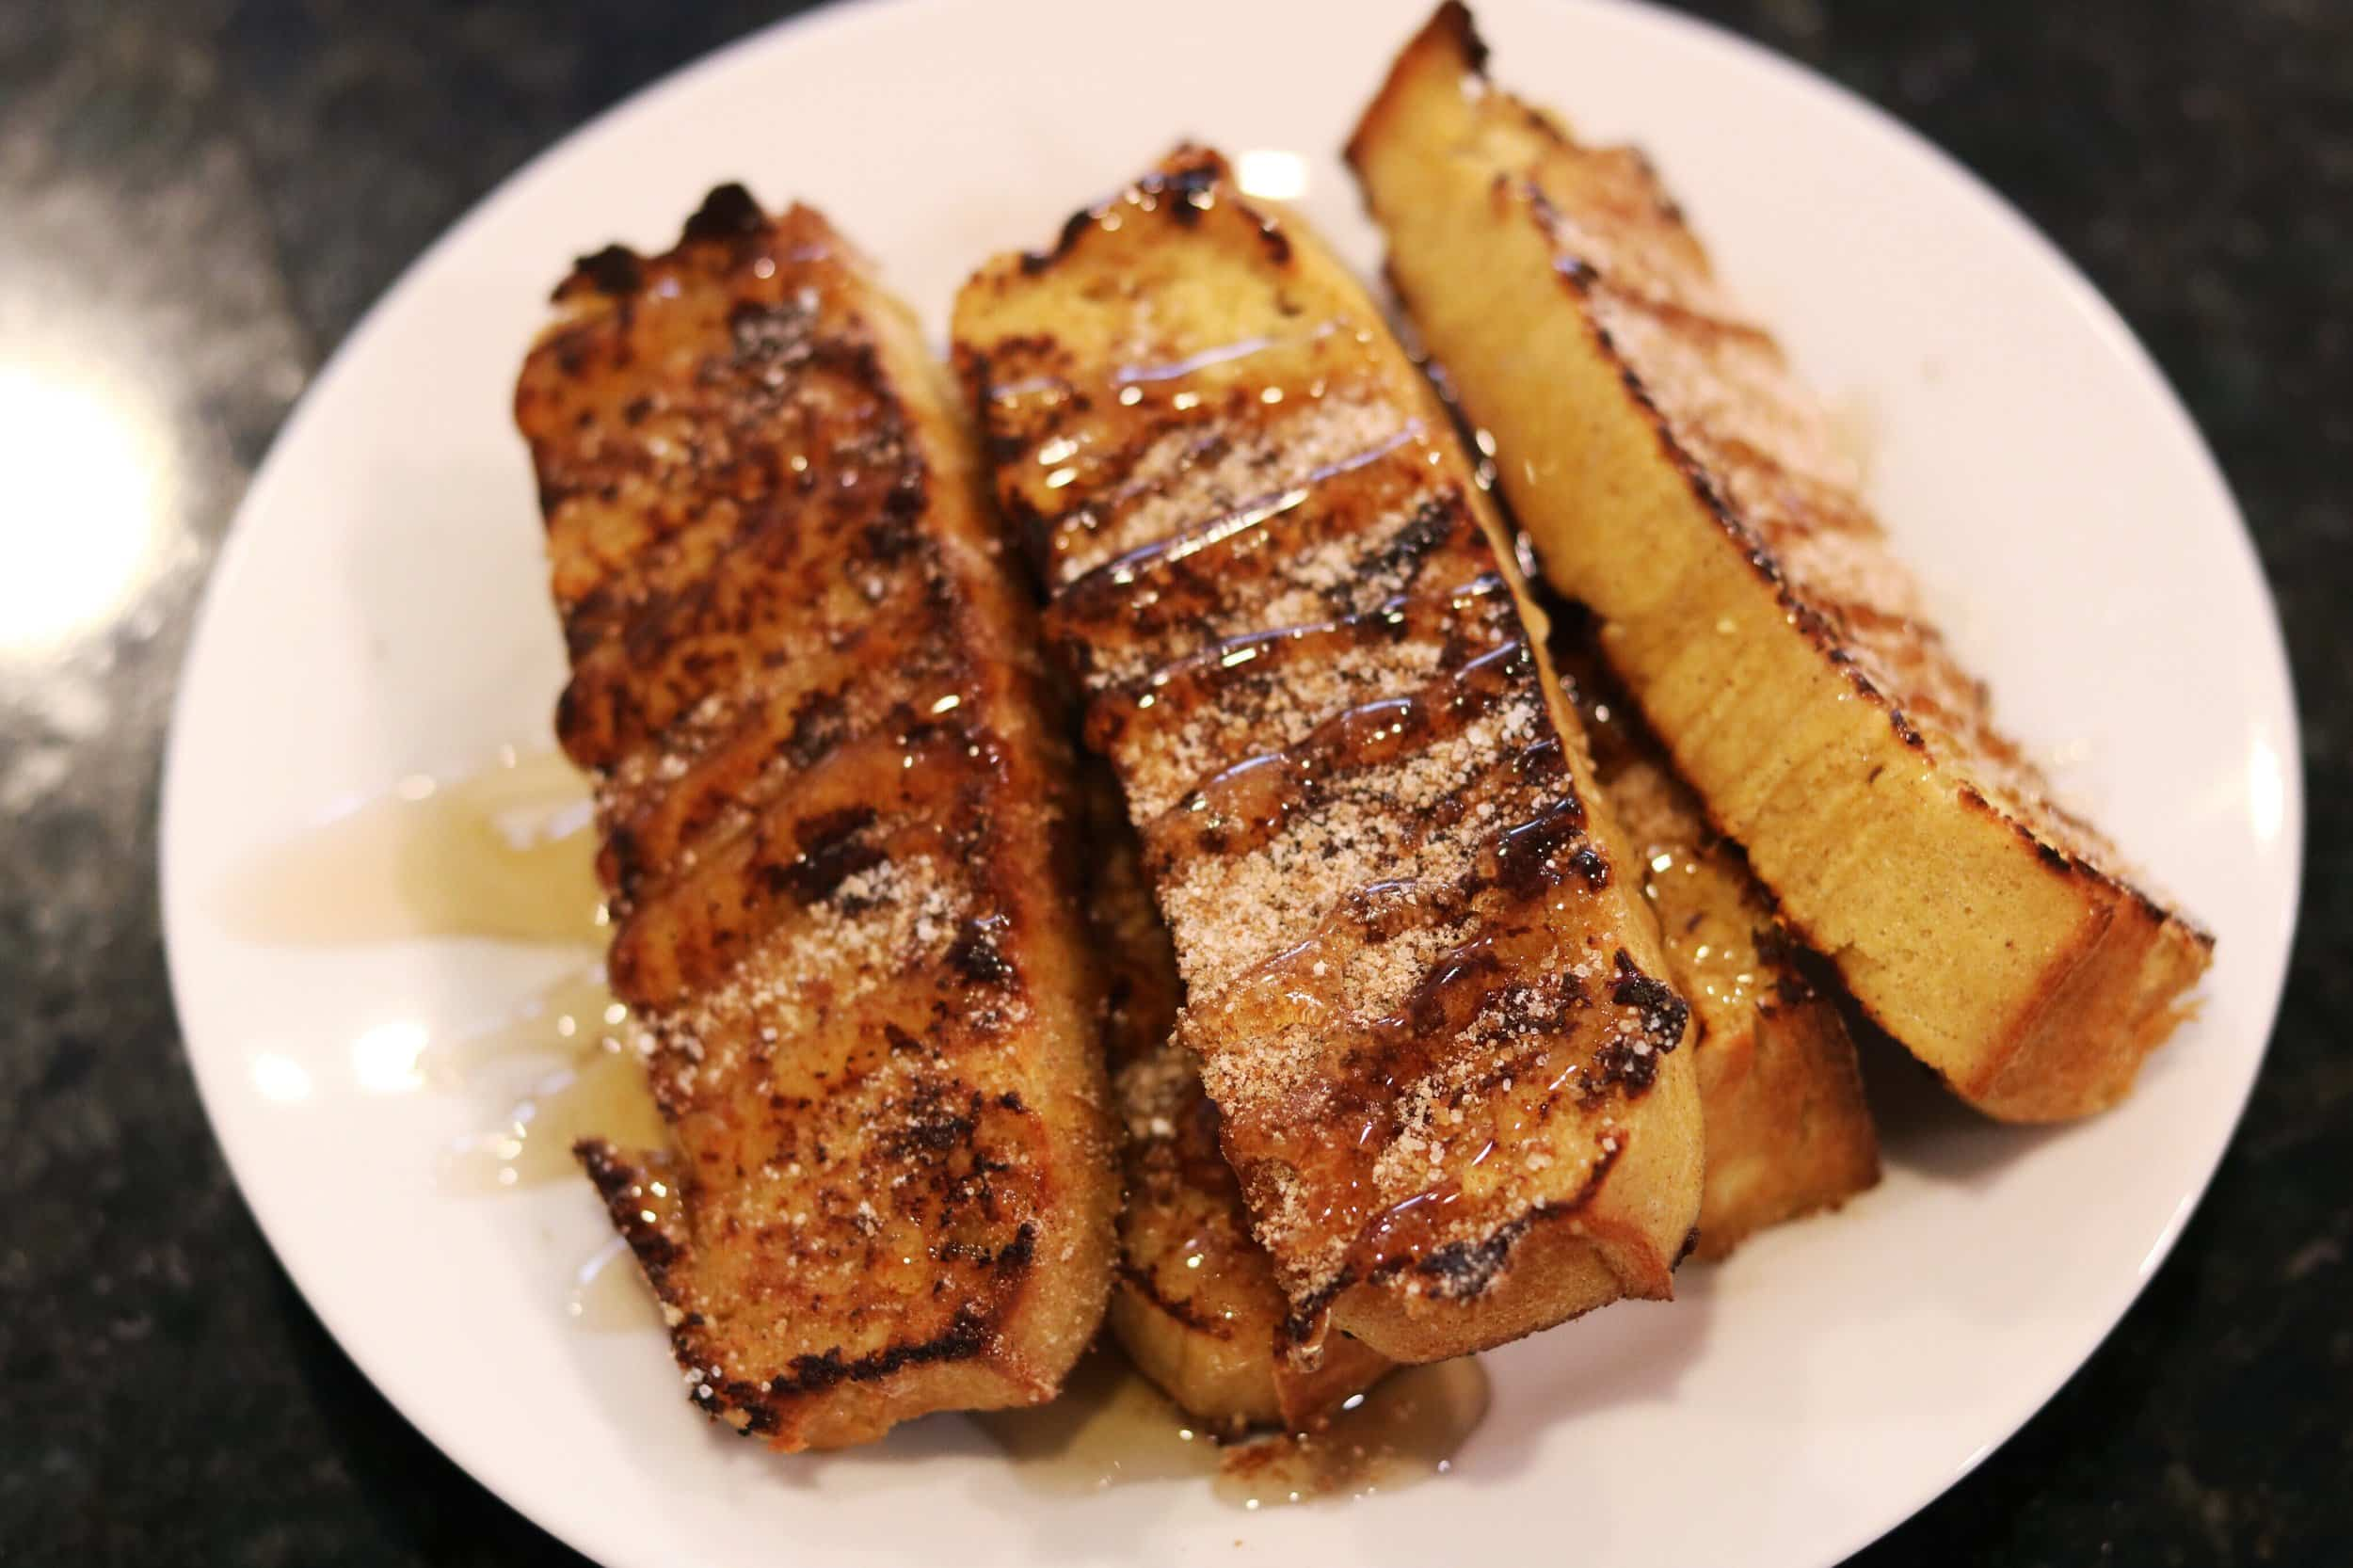 Keto French Toast Sticks